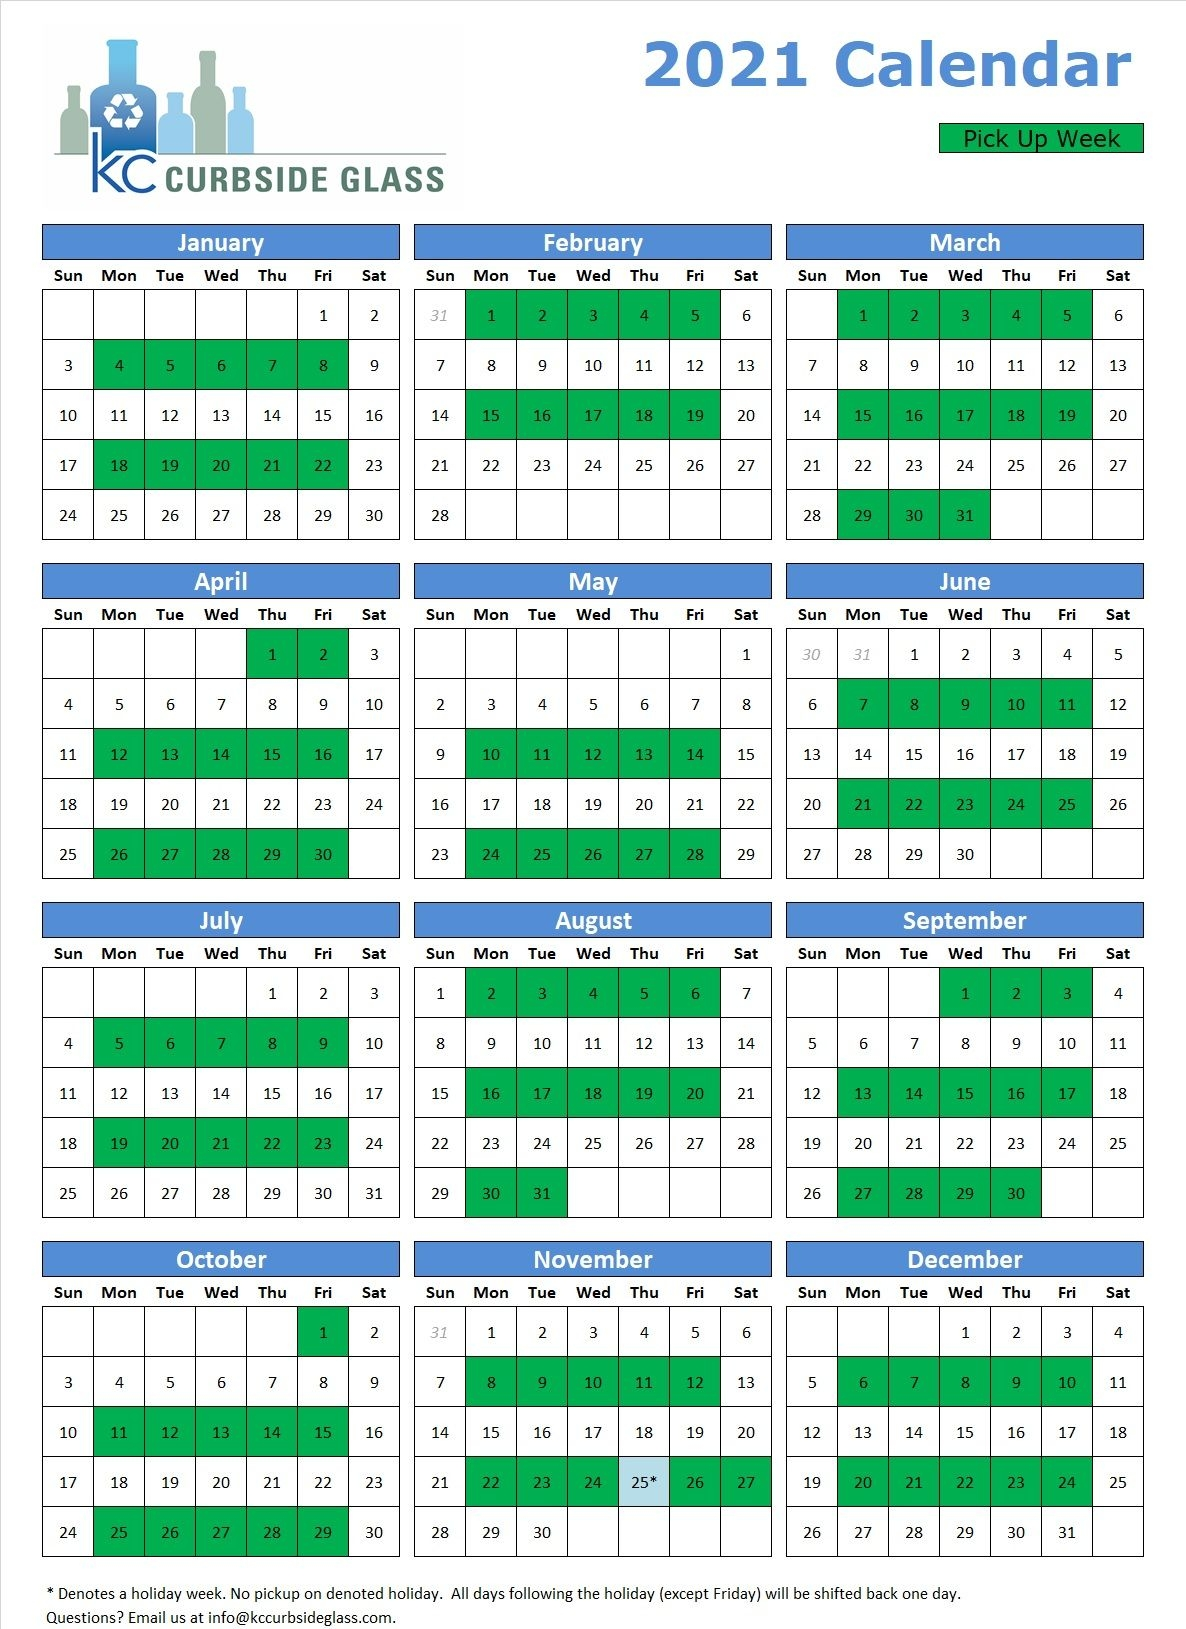 Curbside Recycling Calendar - Curbside Glass Recycling